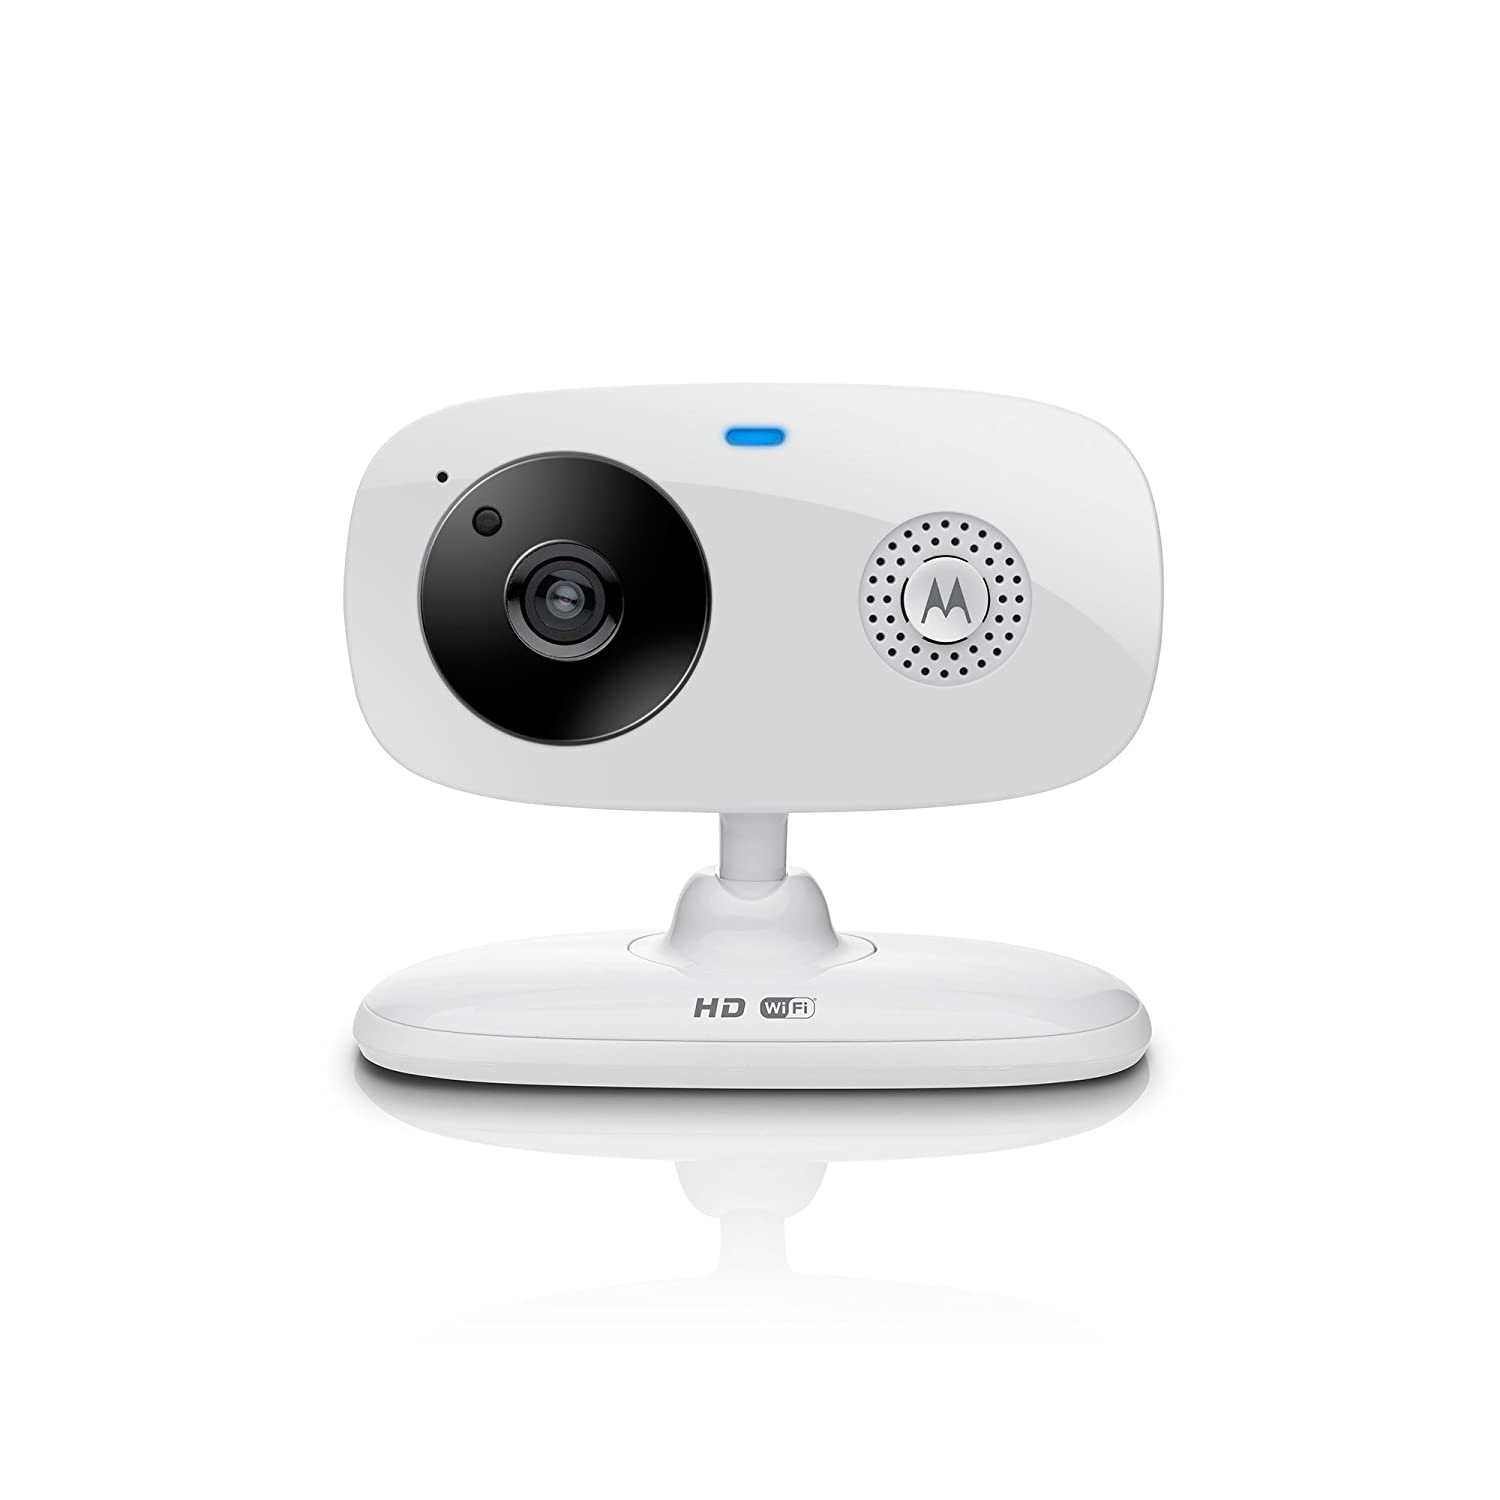 Amazon customer reviews motorola focus66 wi fi hd - Amazon Com Motorola Home Video Wi Fi Hd Surveillance Camera White Focus50 W Camera Photo